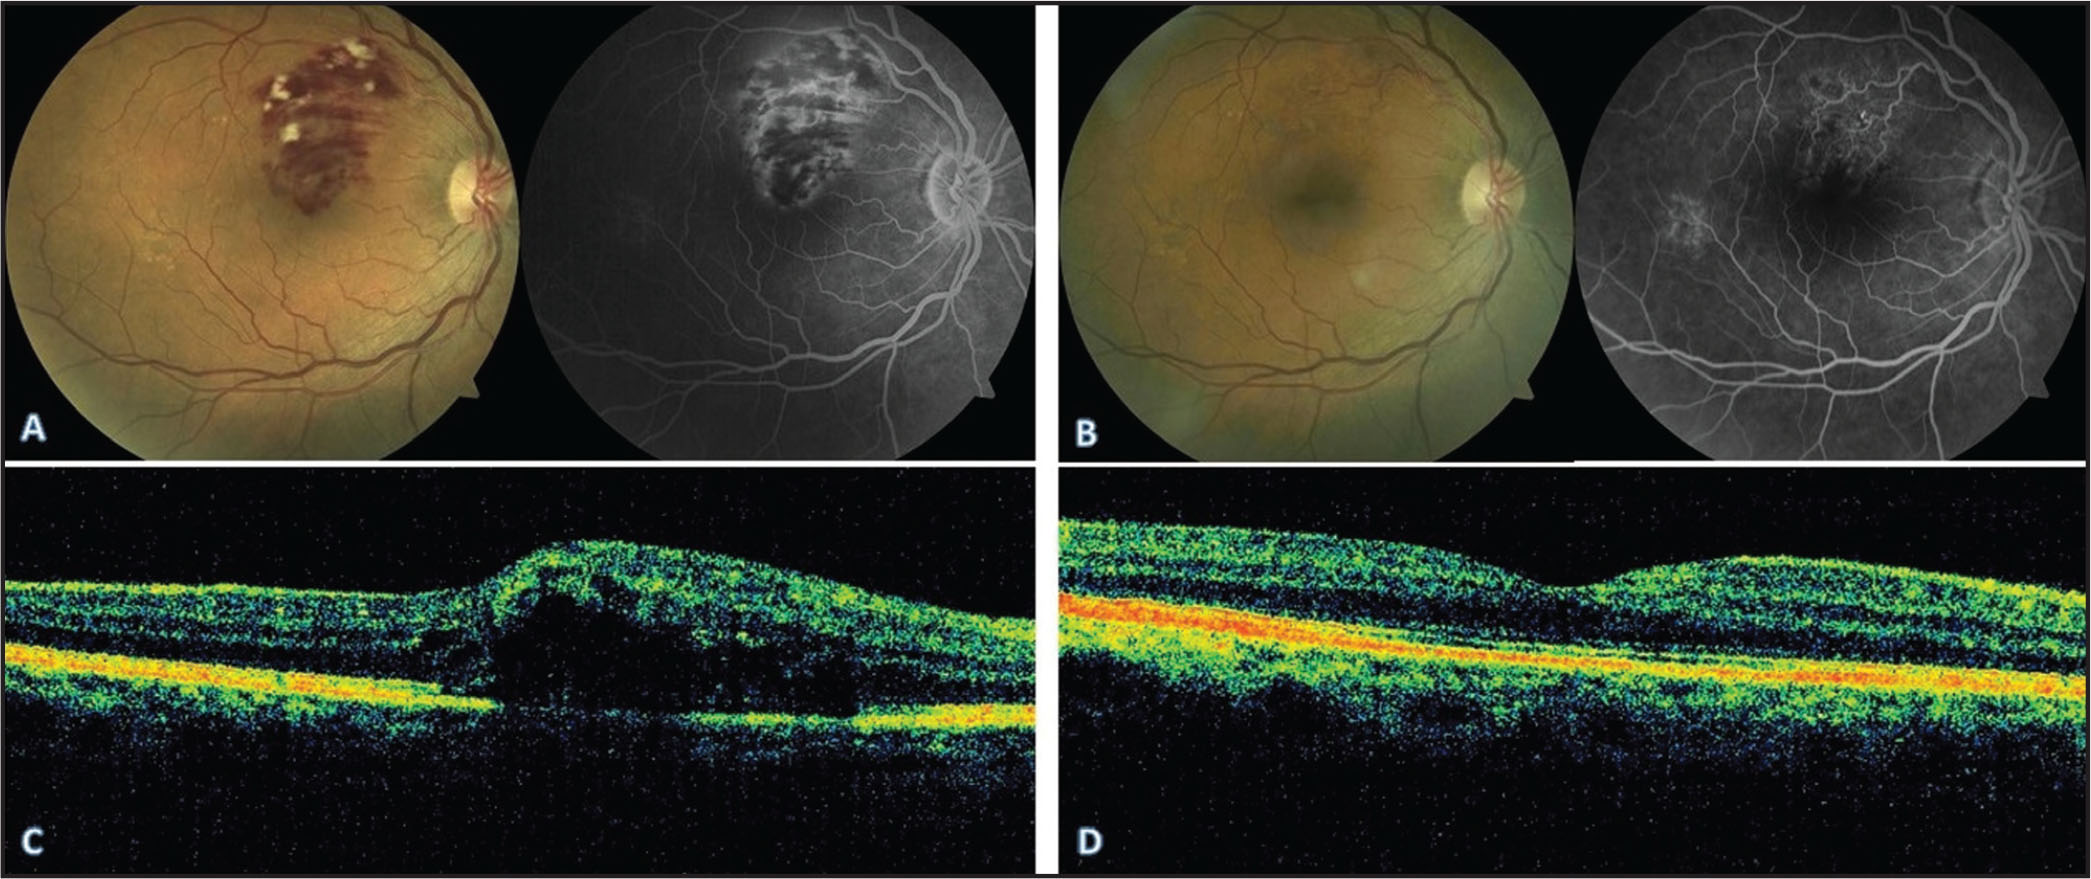 (A, B) Fluorescein angiography at baseline and at 3 months in a patient after intravitreal diclofenac (IVD). (C, D) Optical coherence tomography baseline and at 3 months after IVD showing resolution of macular edema.